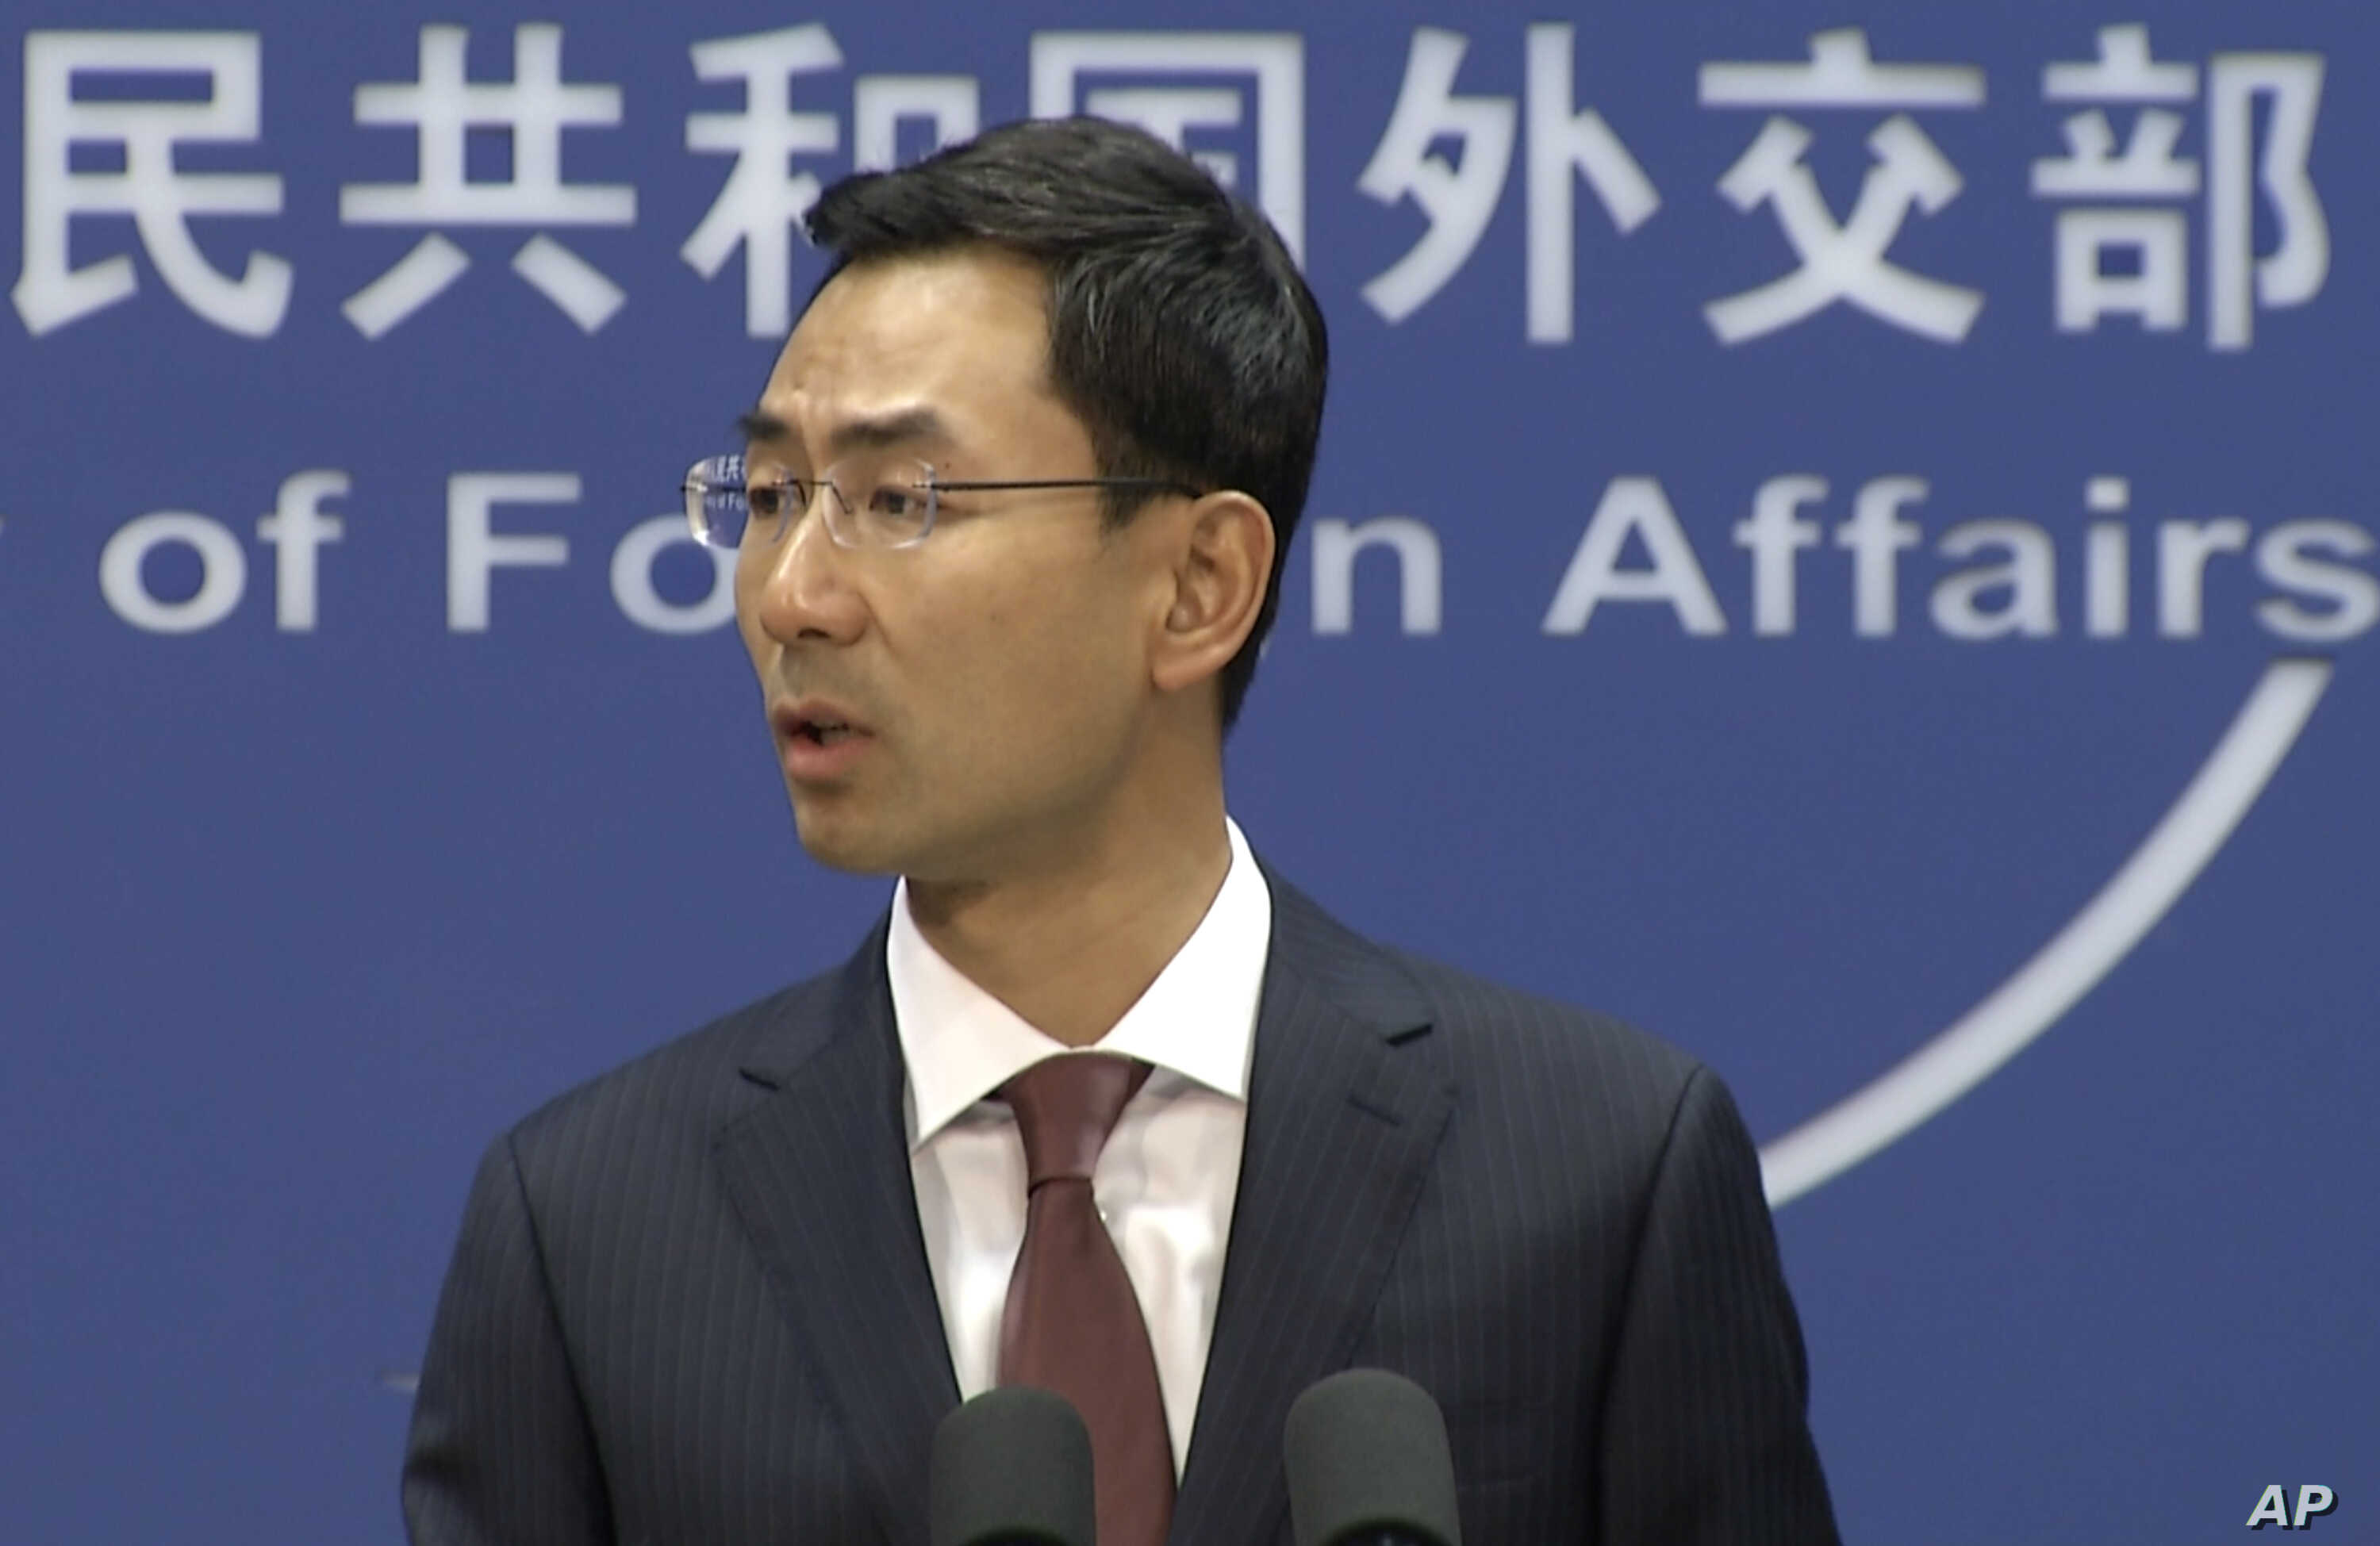 In this image made from video, Chinese Foreign Ministry spokesperson Geng Shuang speaks during a press briefing in Beijing, July 11, 2017. In a statement Saturday, China condemned the latest ICBM launch by North Korea.